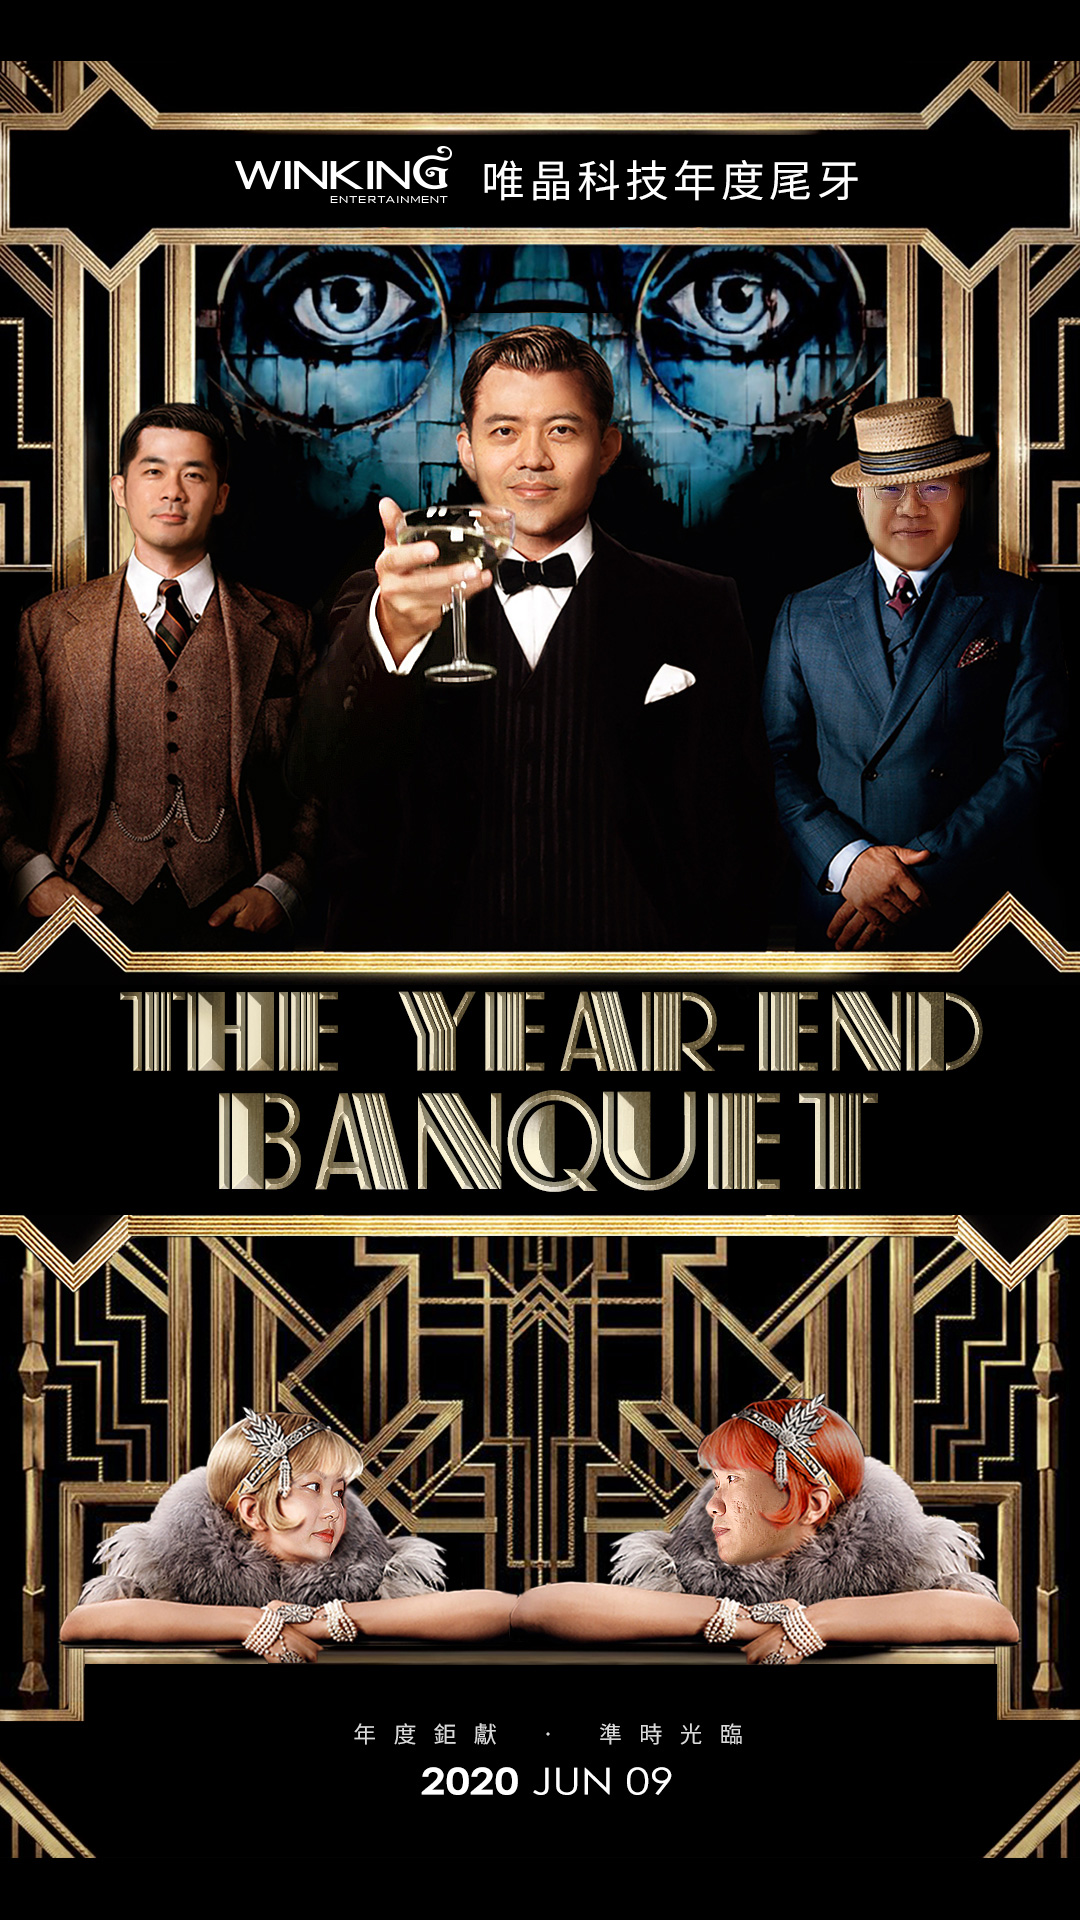 The Year End Banquet